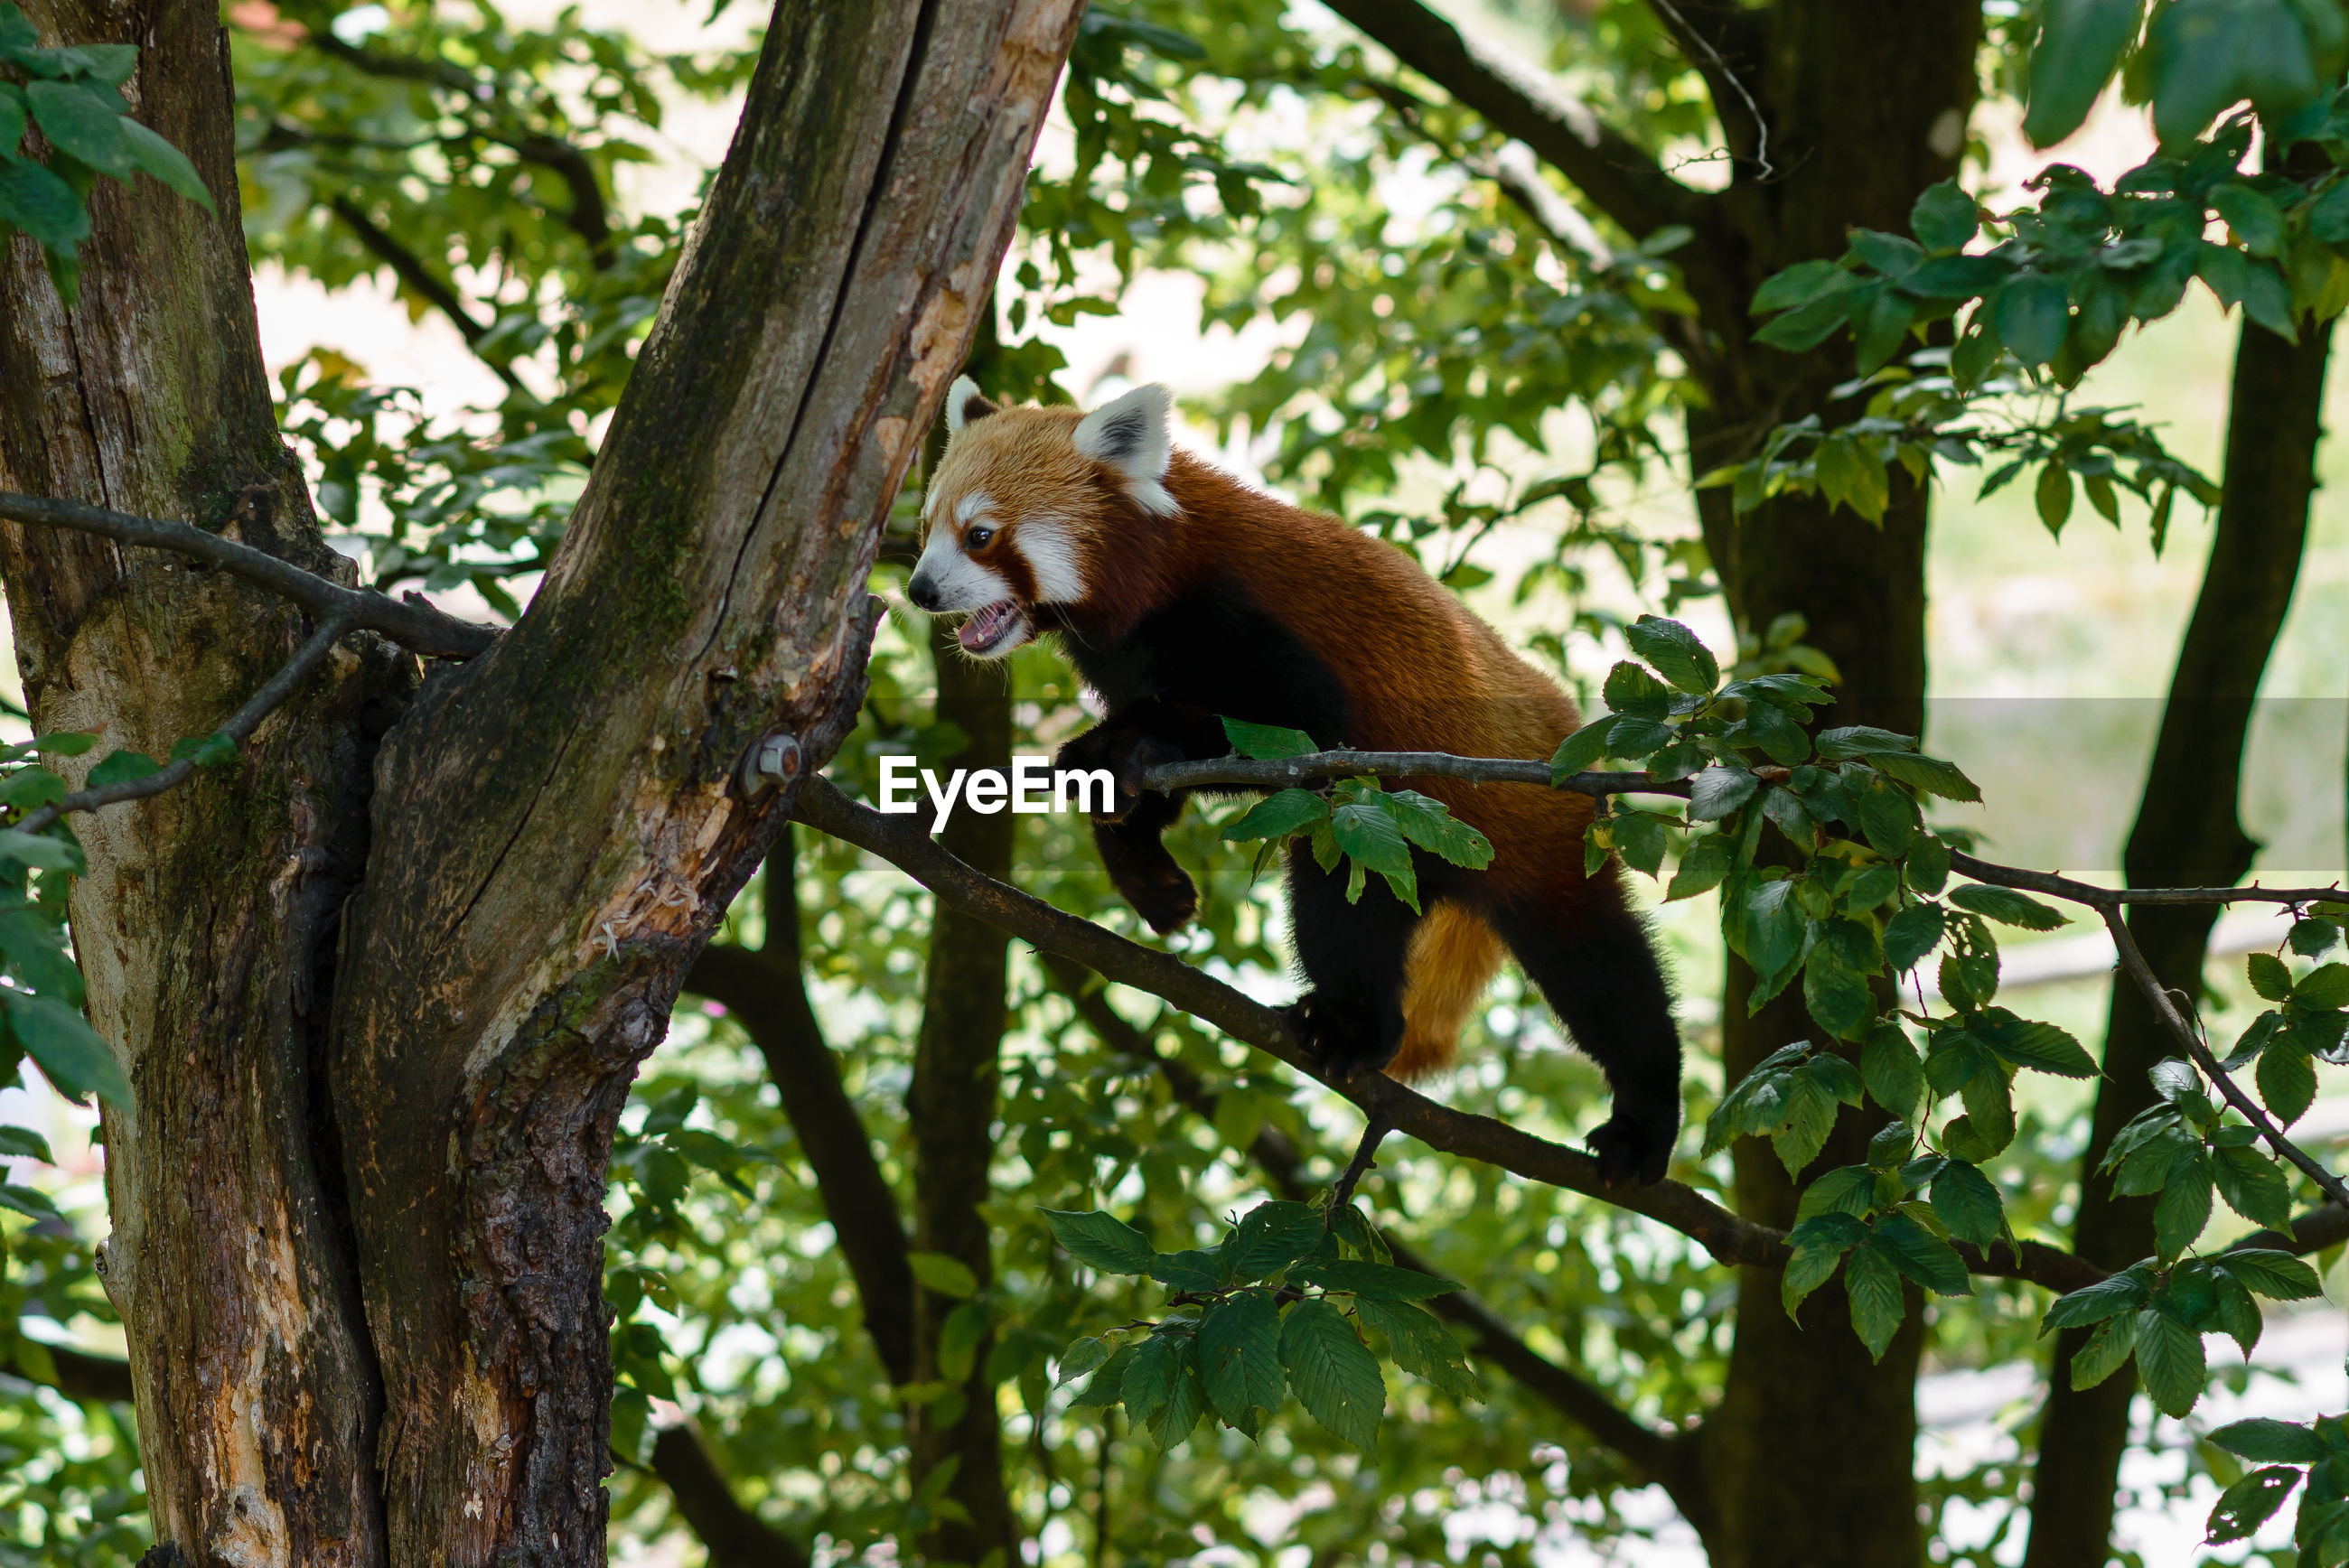 Low angle view of red panda in a tree